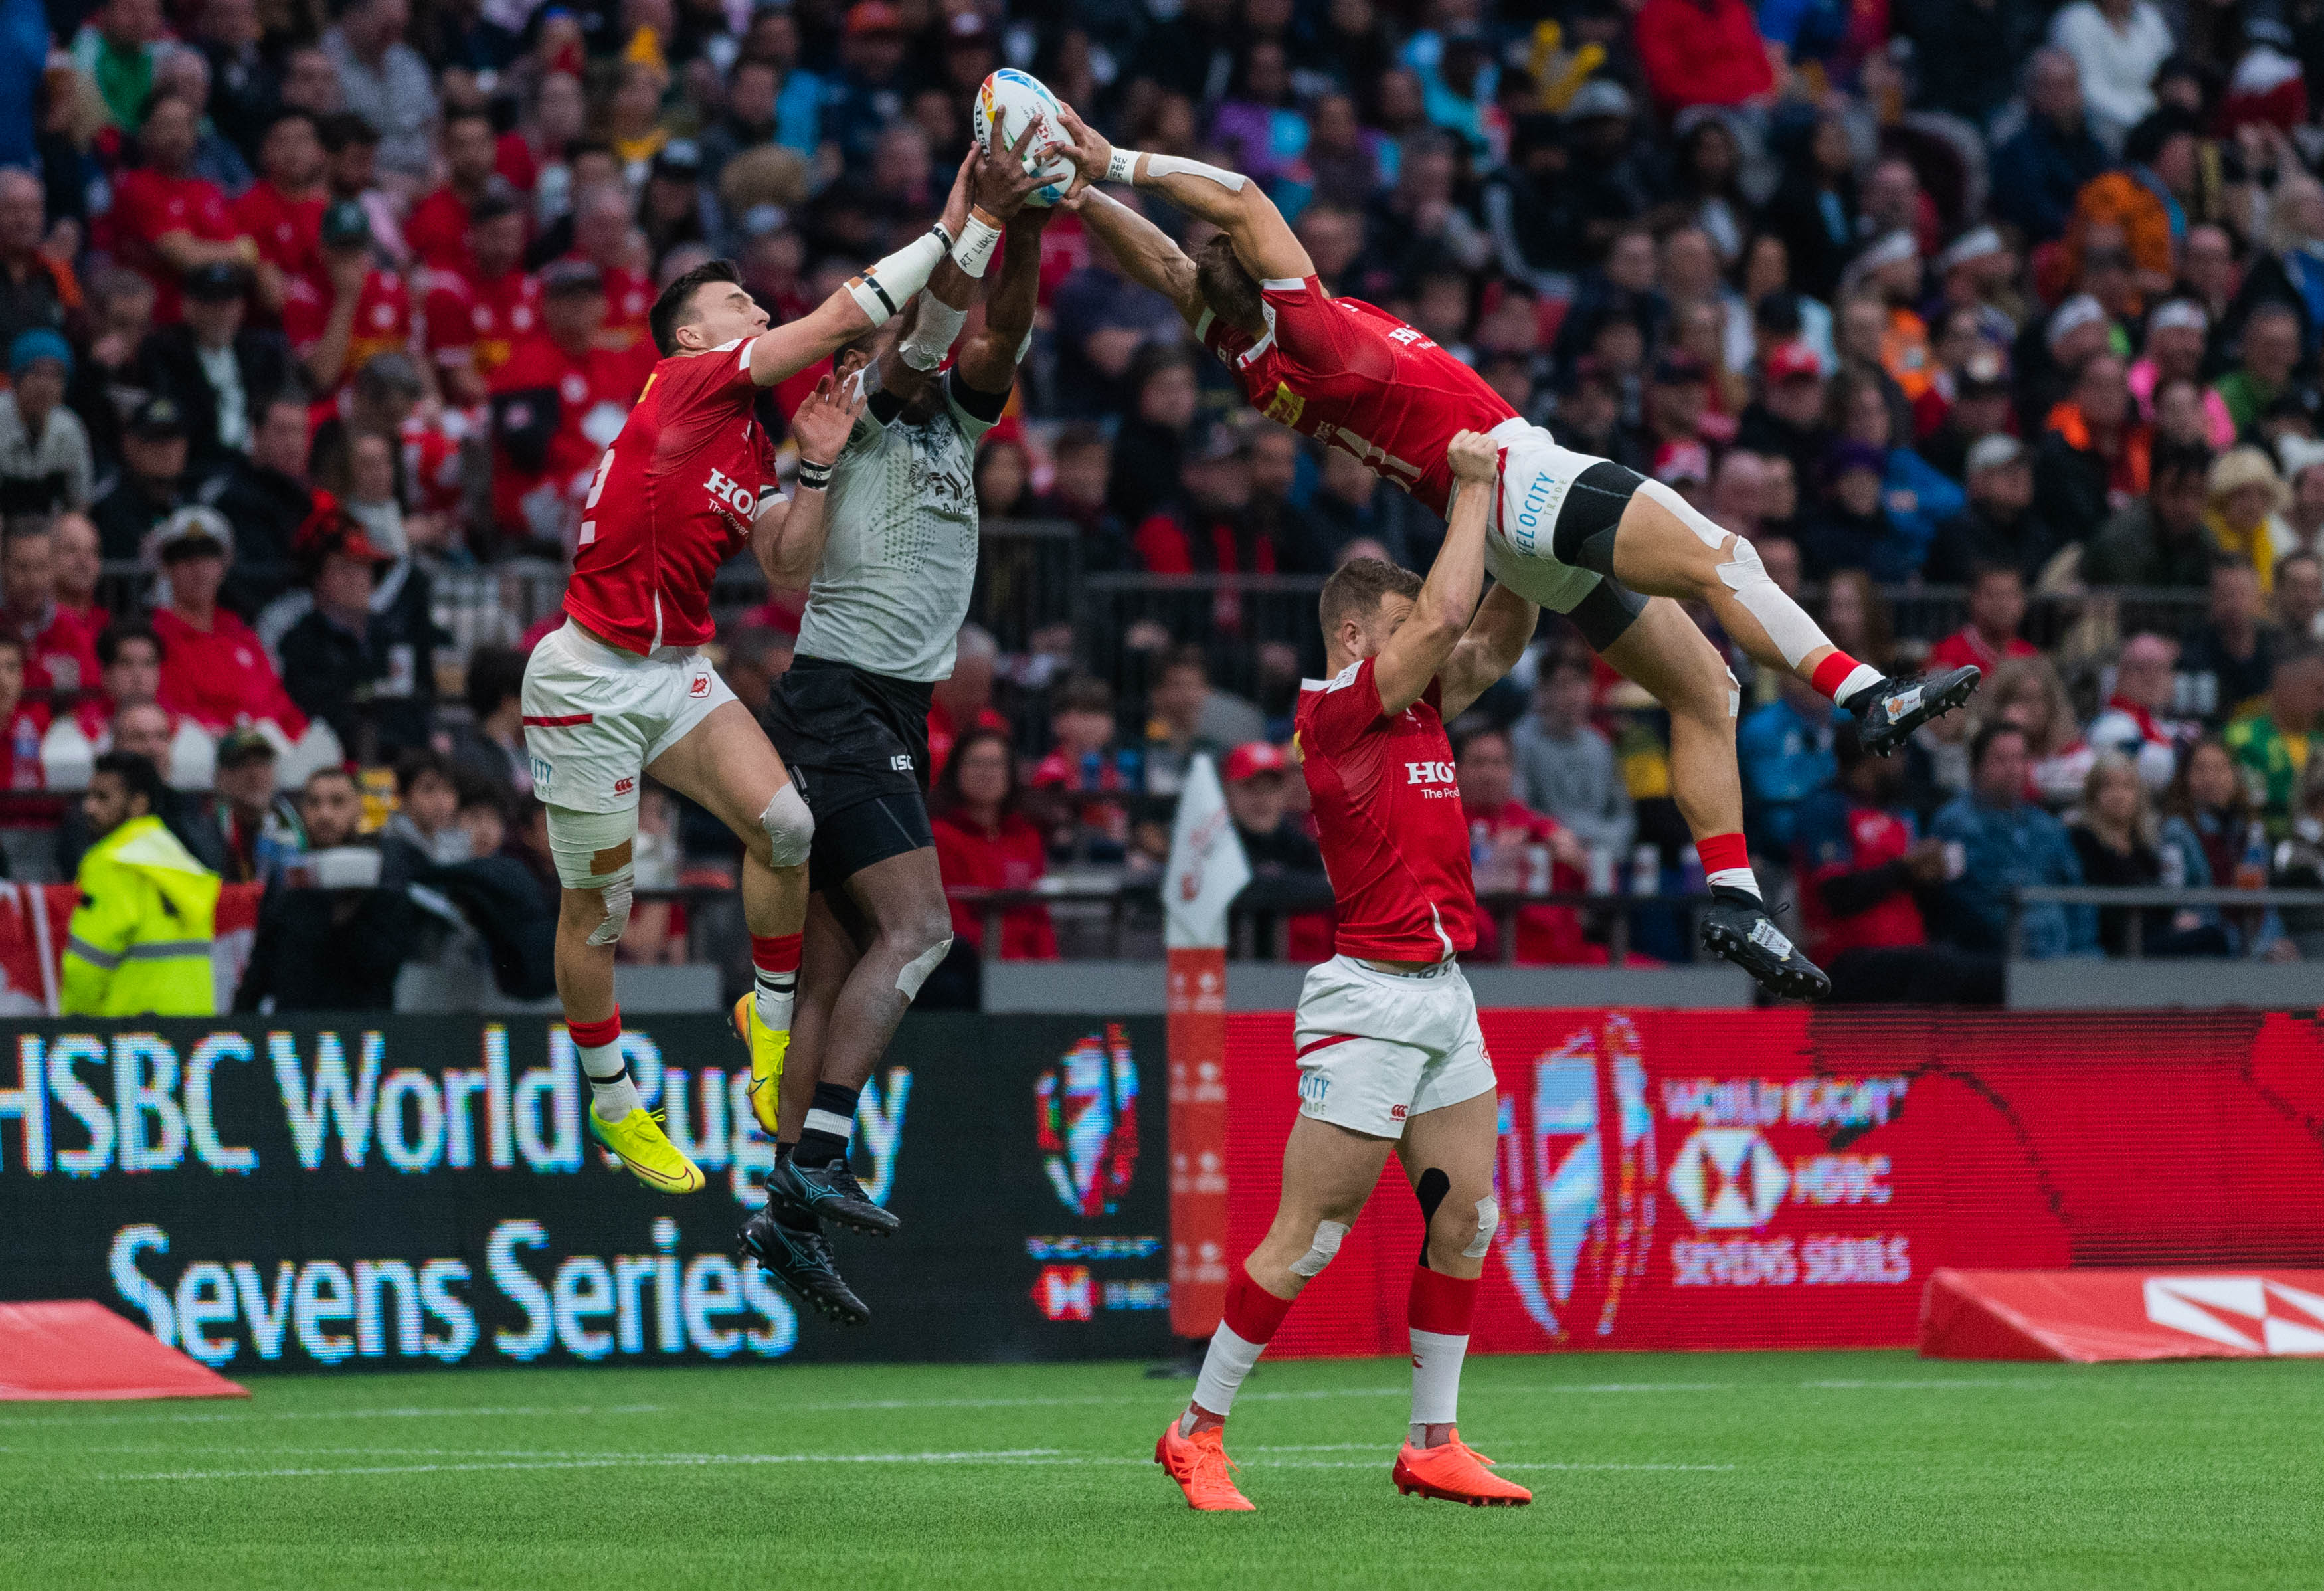 Canada in their upset against Fiji.